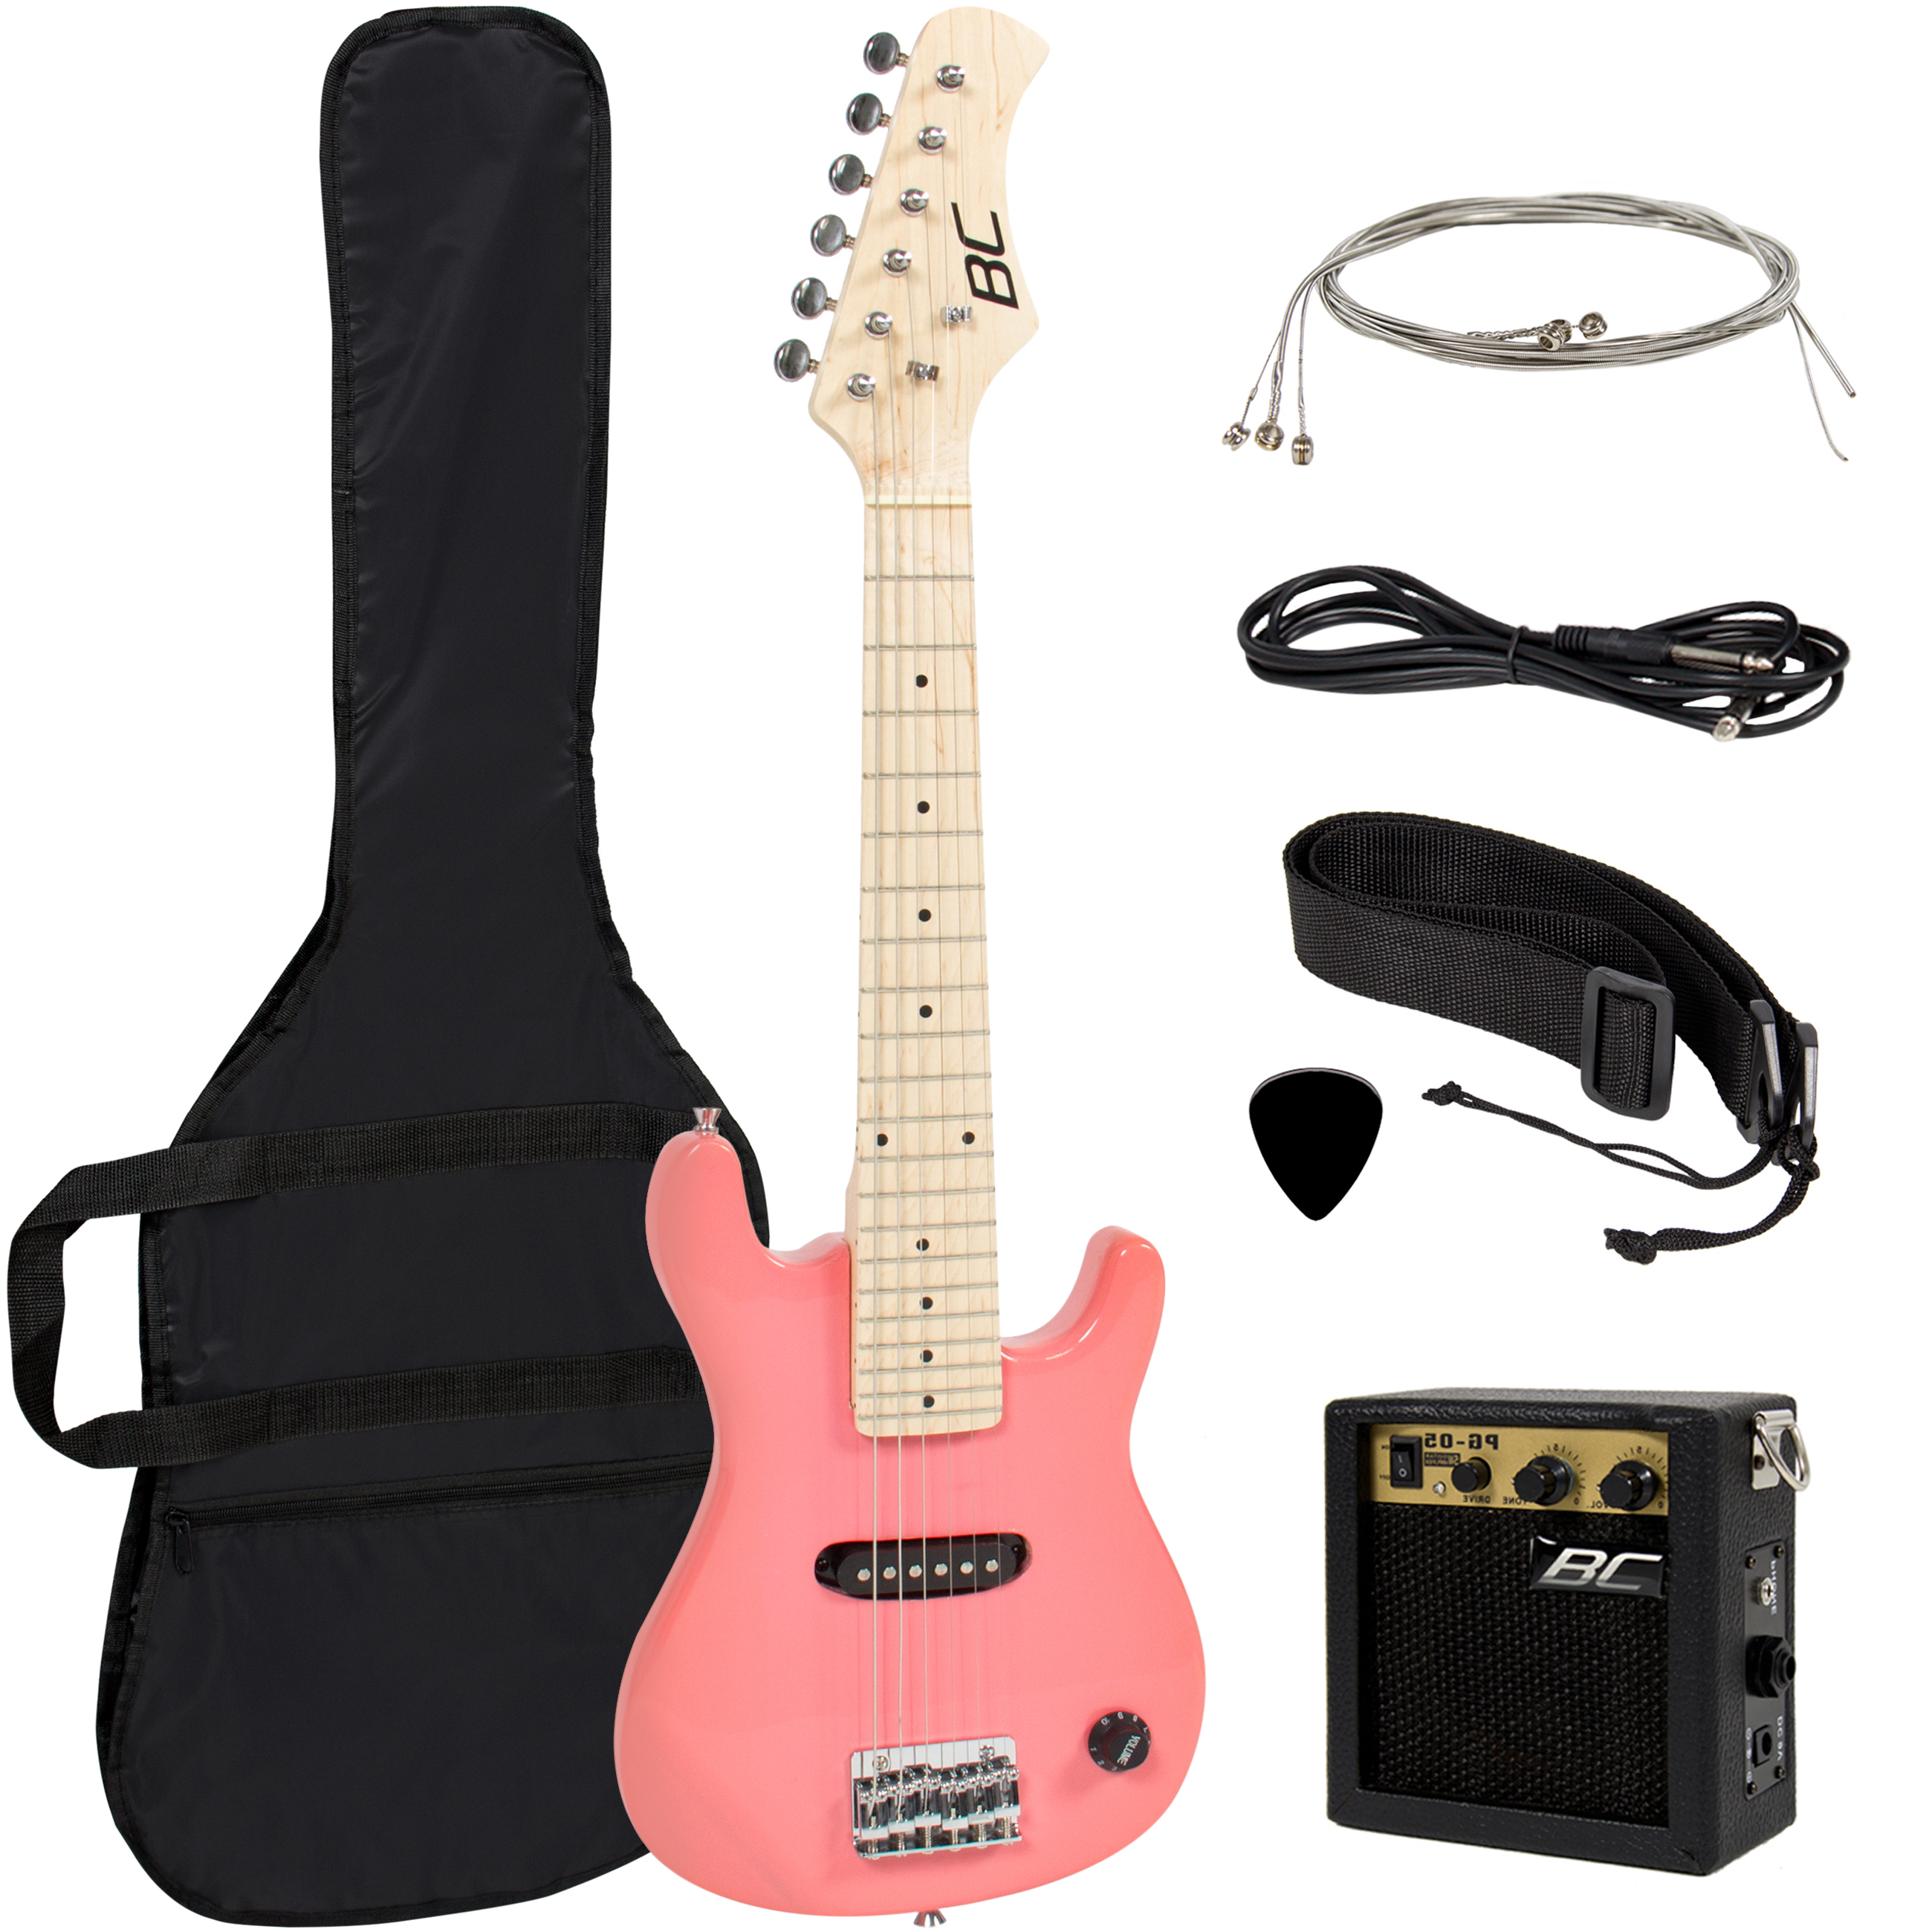 "Best Choice Products Electric Guitar Kids 30"" Pink Guitar With Amp + Case + Strap and More New"